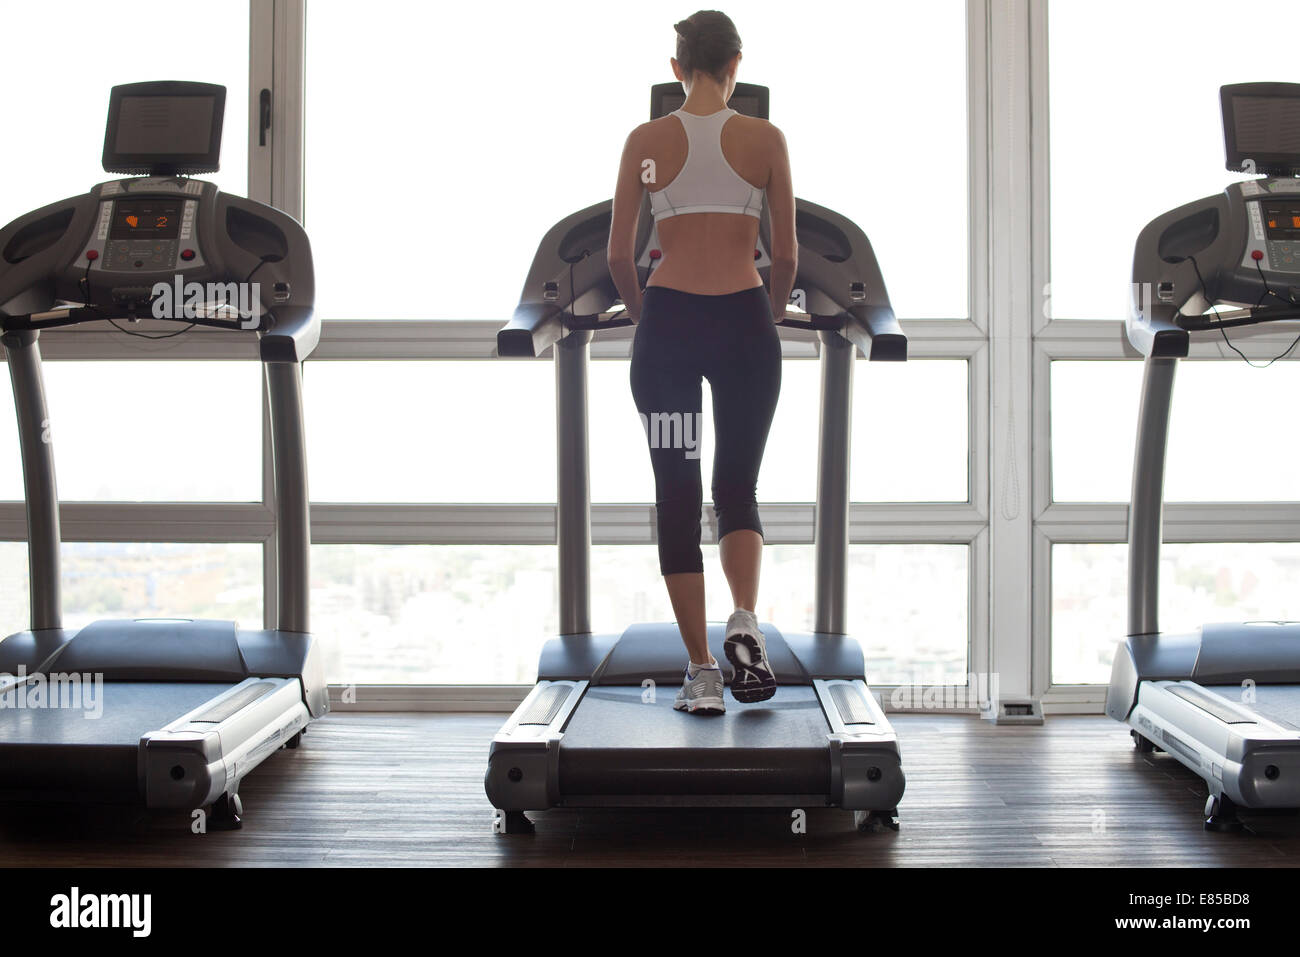 Woman getting in shape at gym - Stock Image